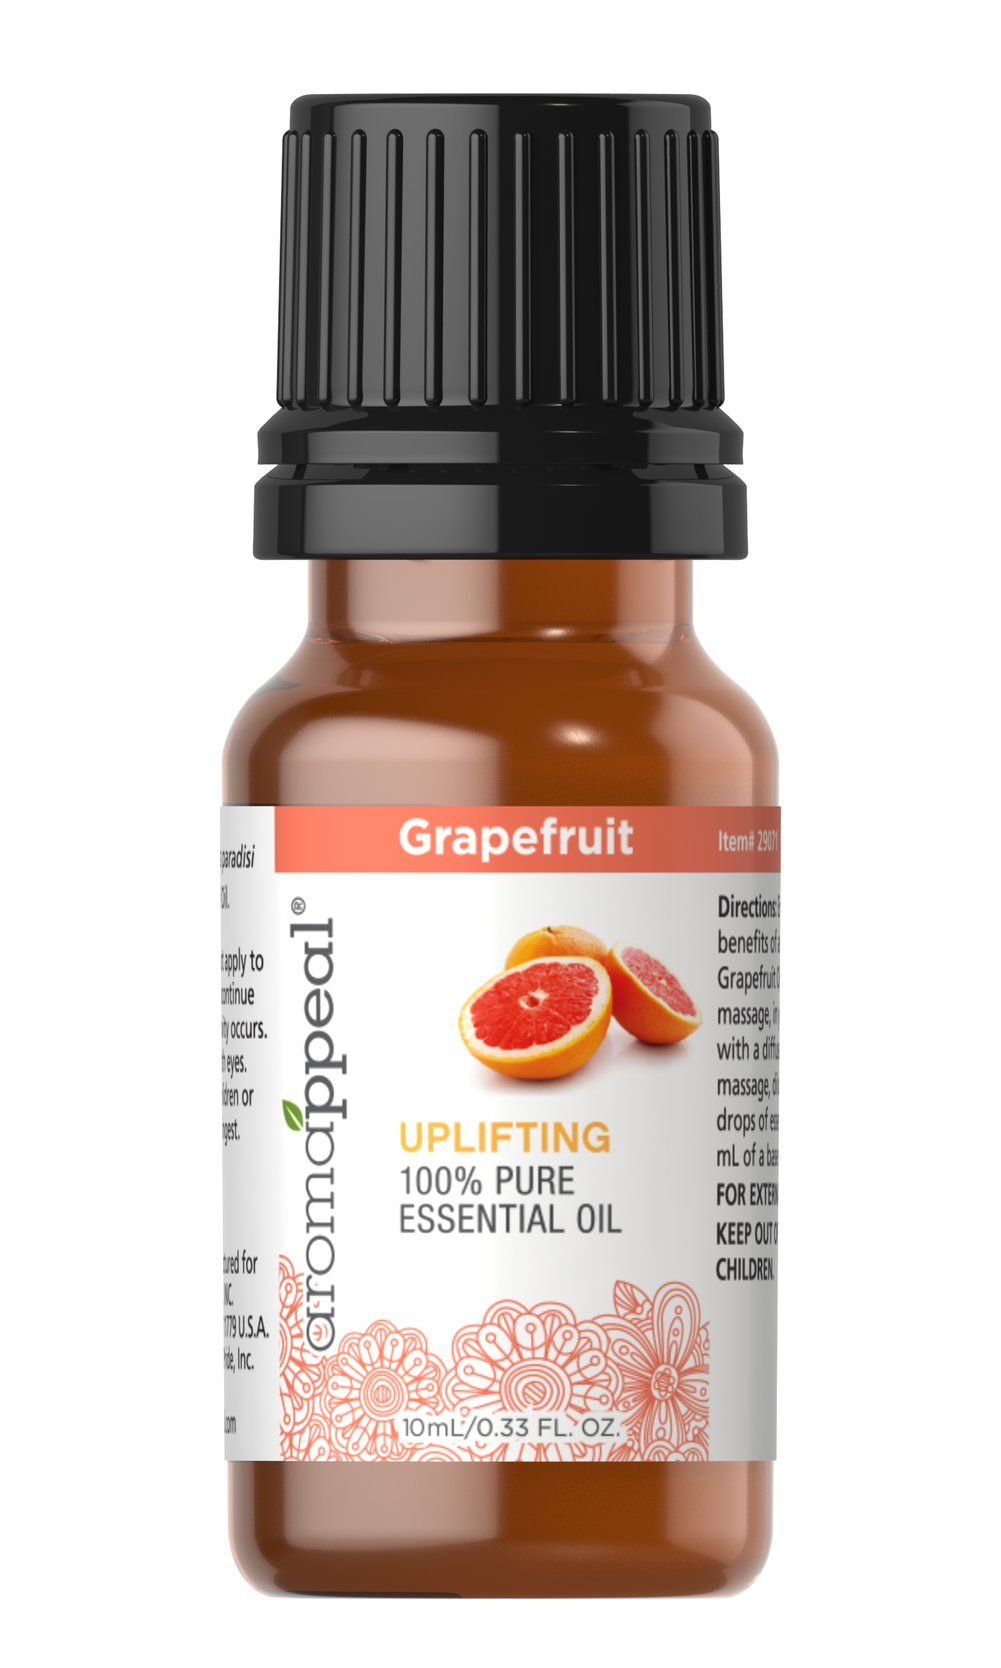 Grapefruit 100% Pure Essential Oil Thumbnail Alternate Bottle View